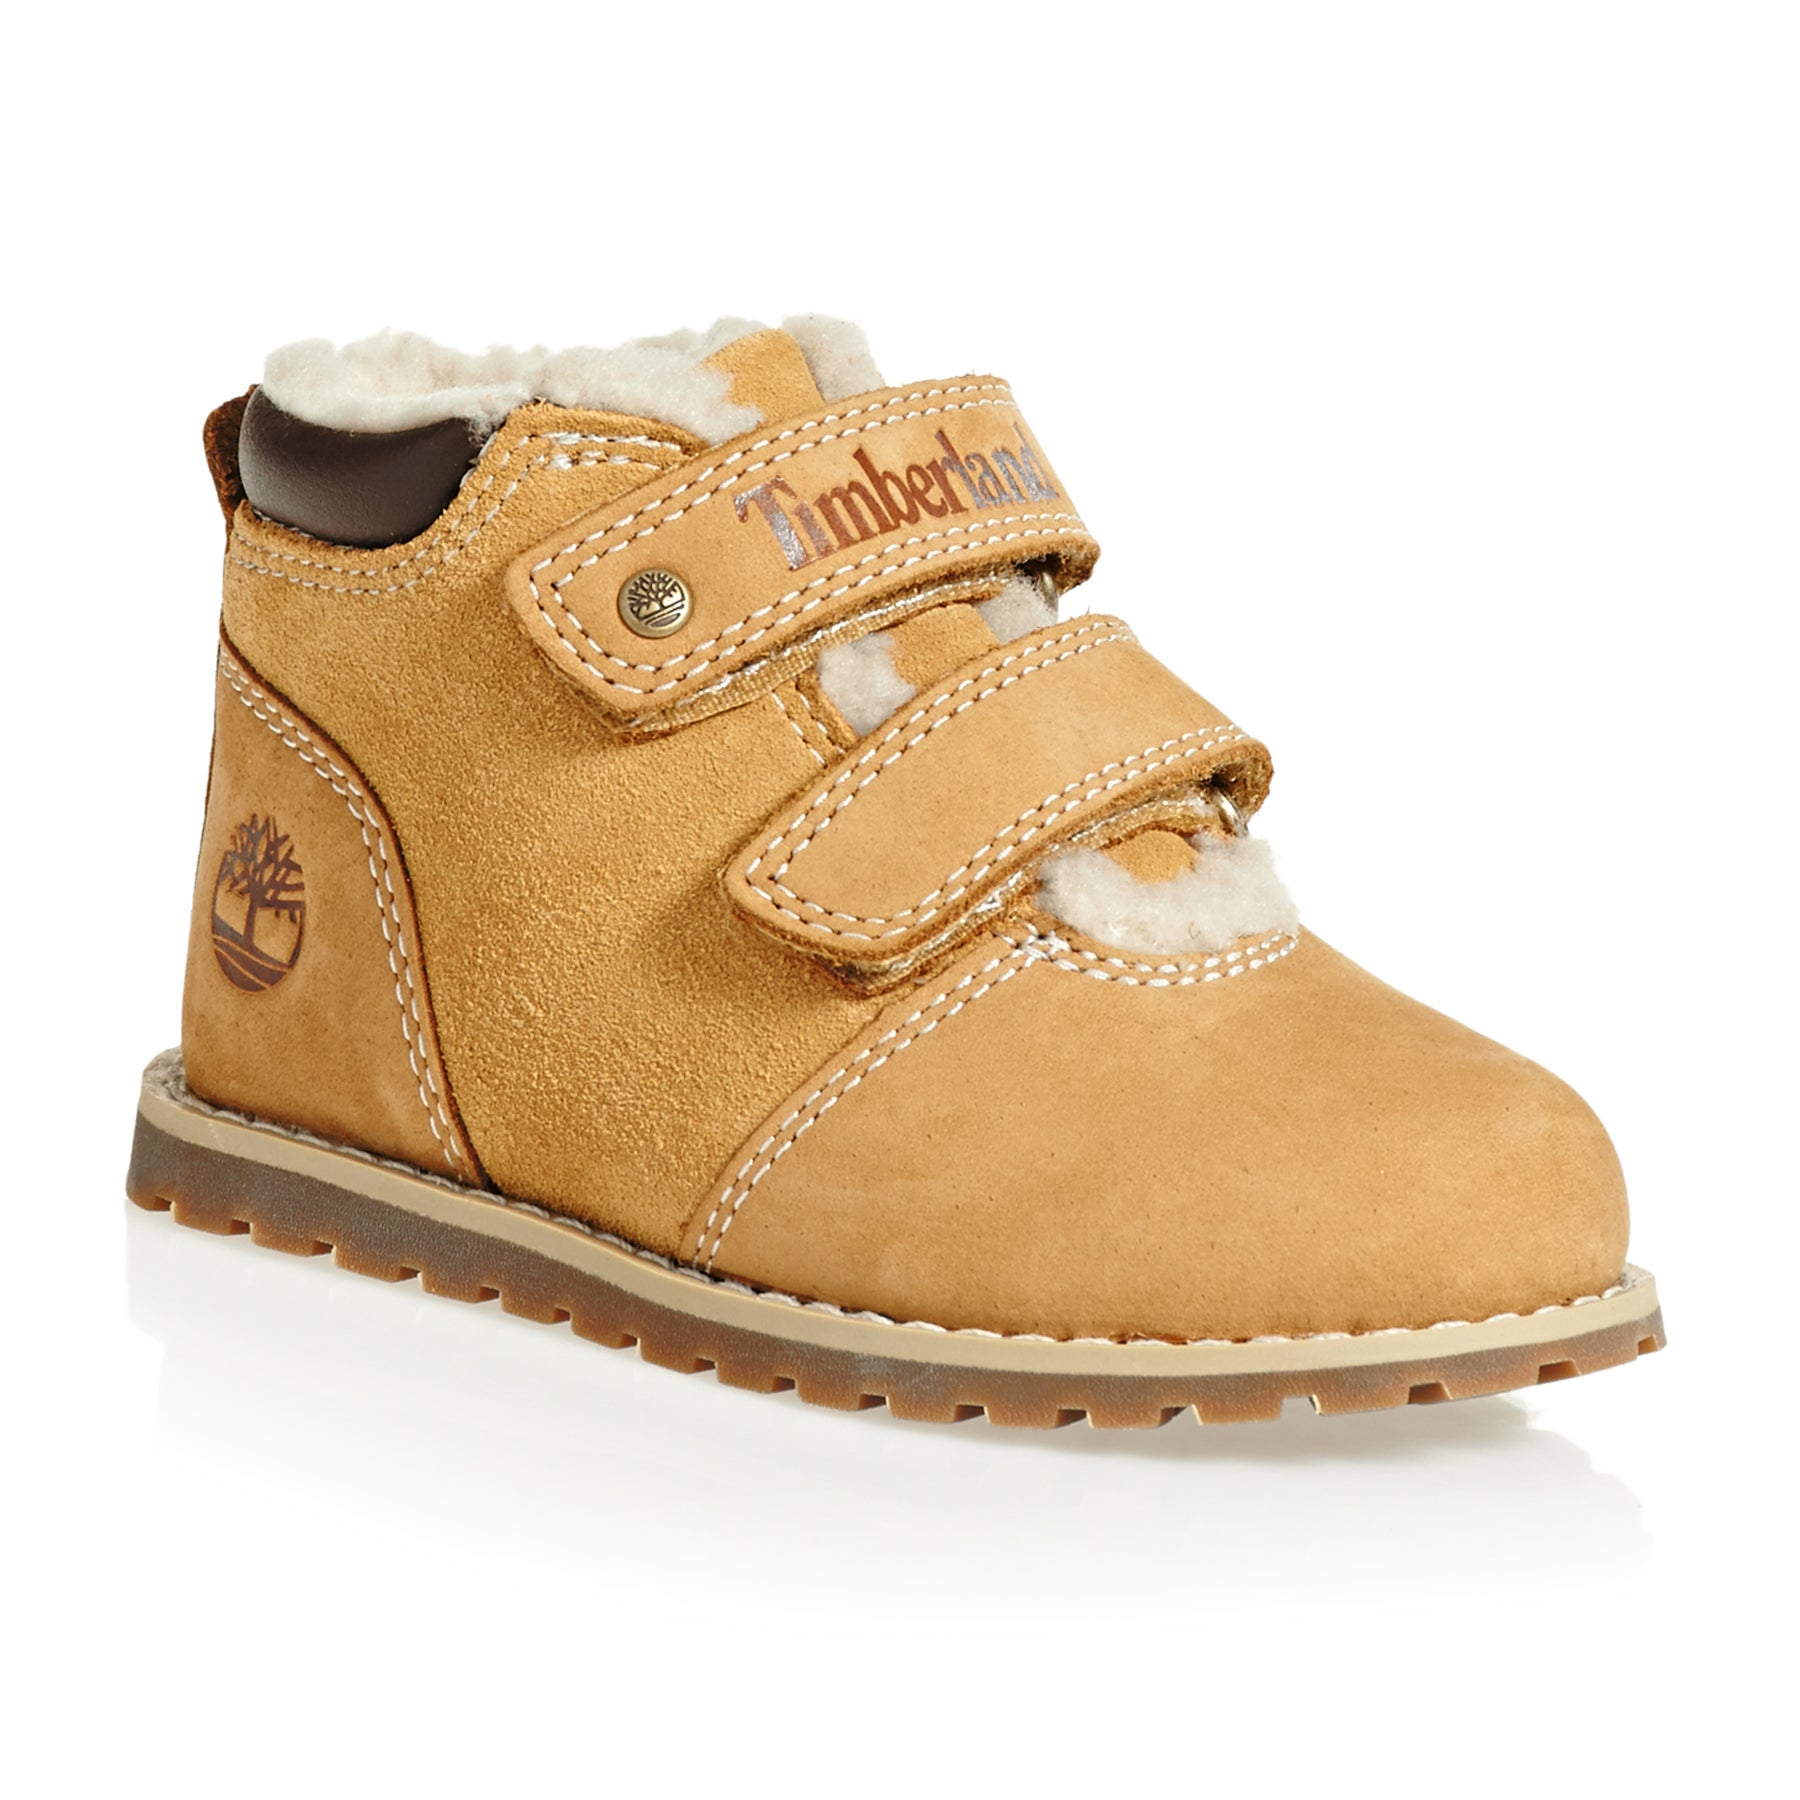 Timberland 6 In Premium Waterproof Boys Boots - Forged Iron Waterbuck